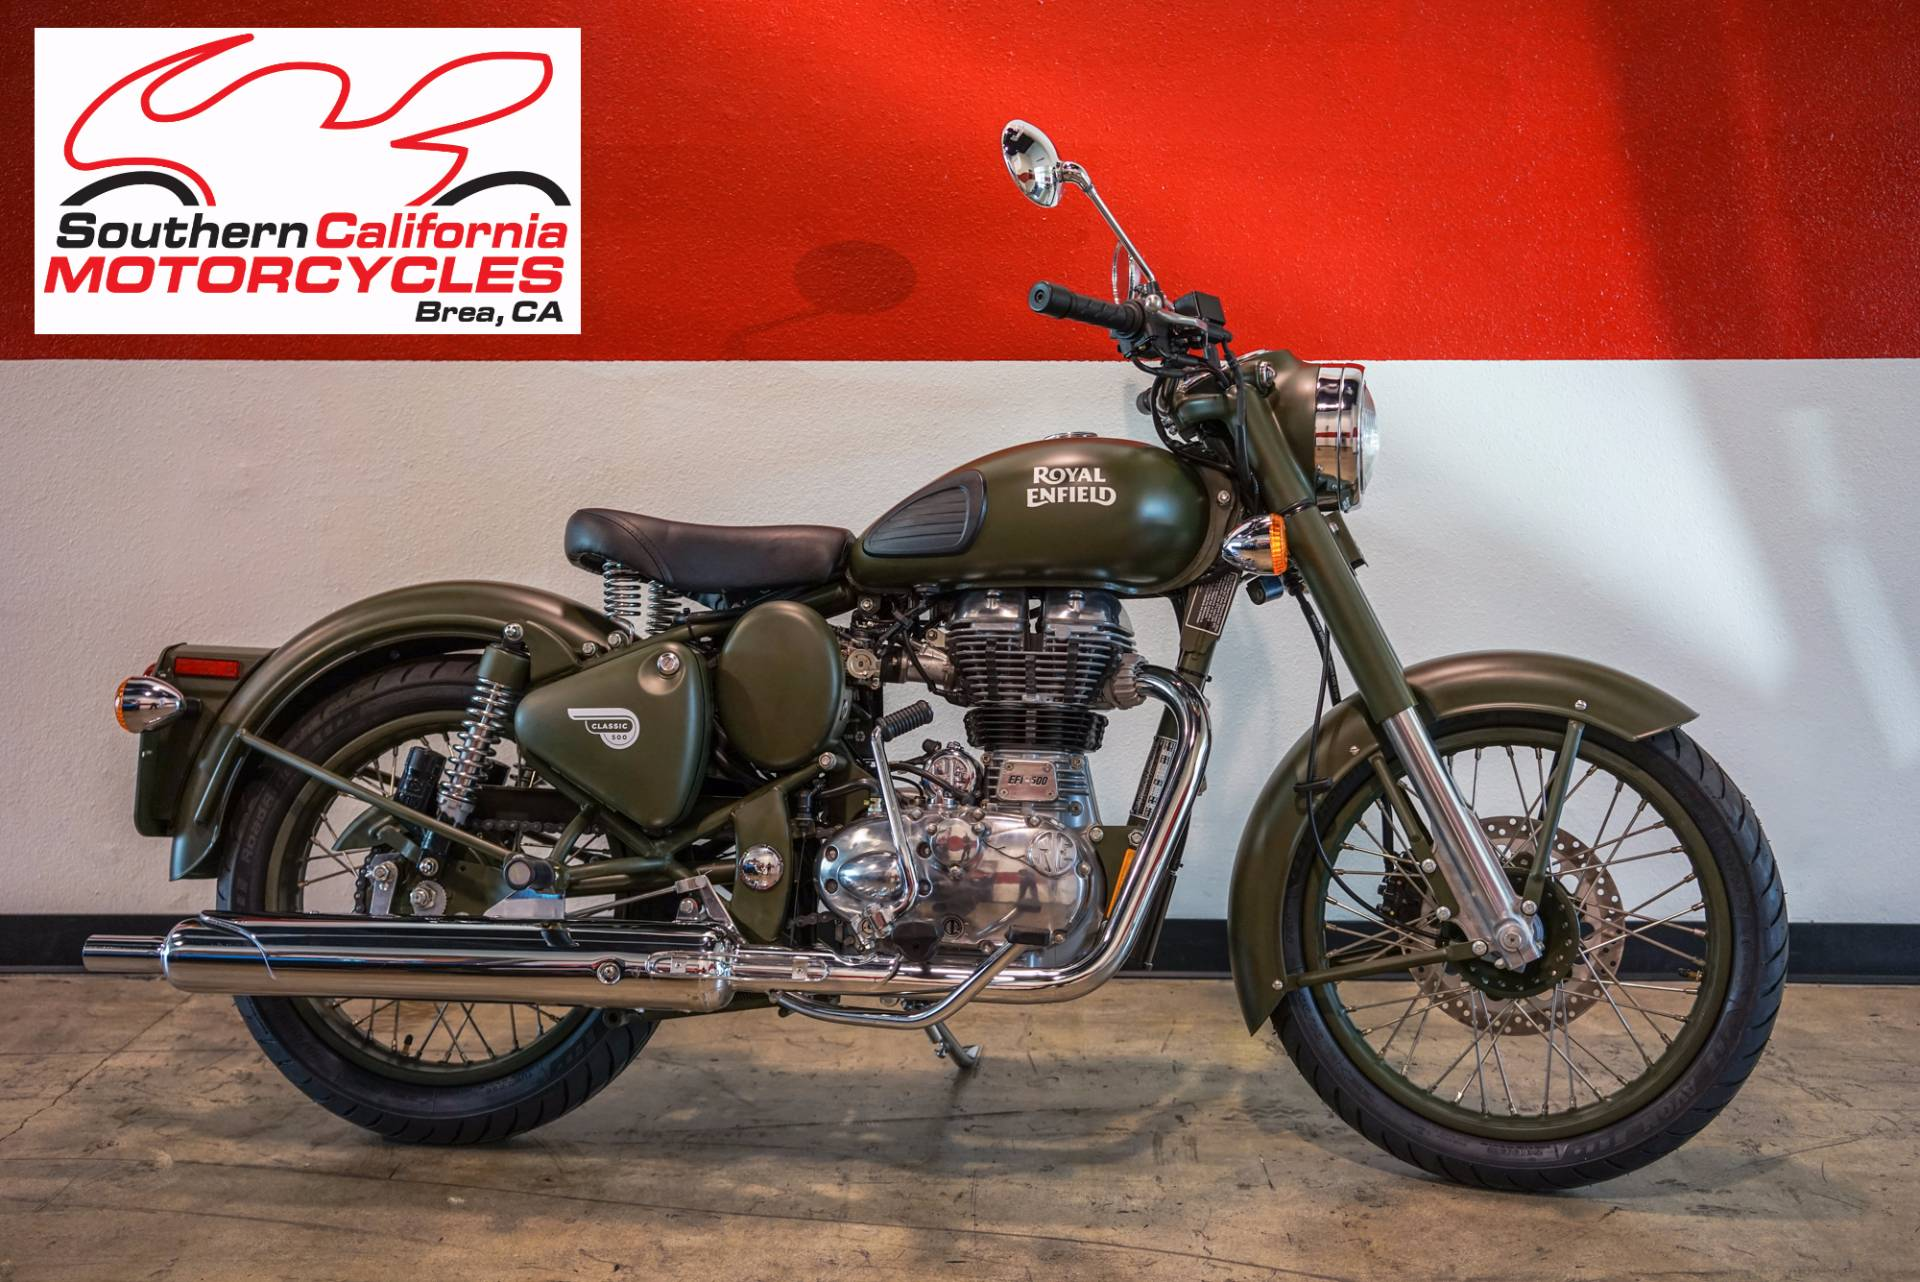 The Classic Battle Green comes to you with a paint scheme reminiscent of the War era a time when